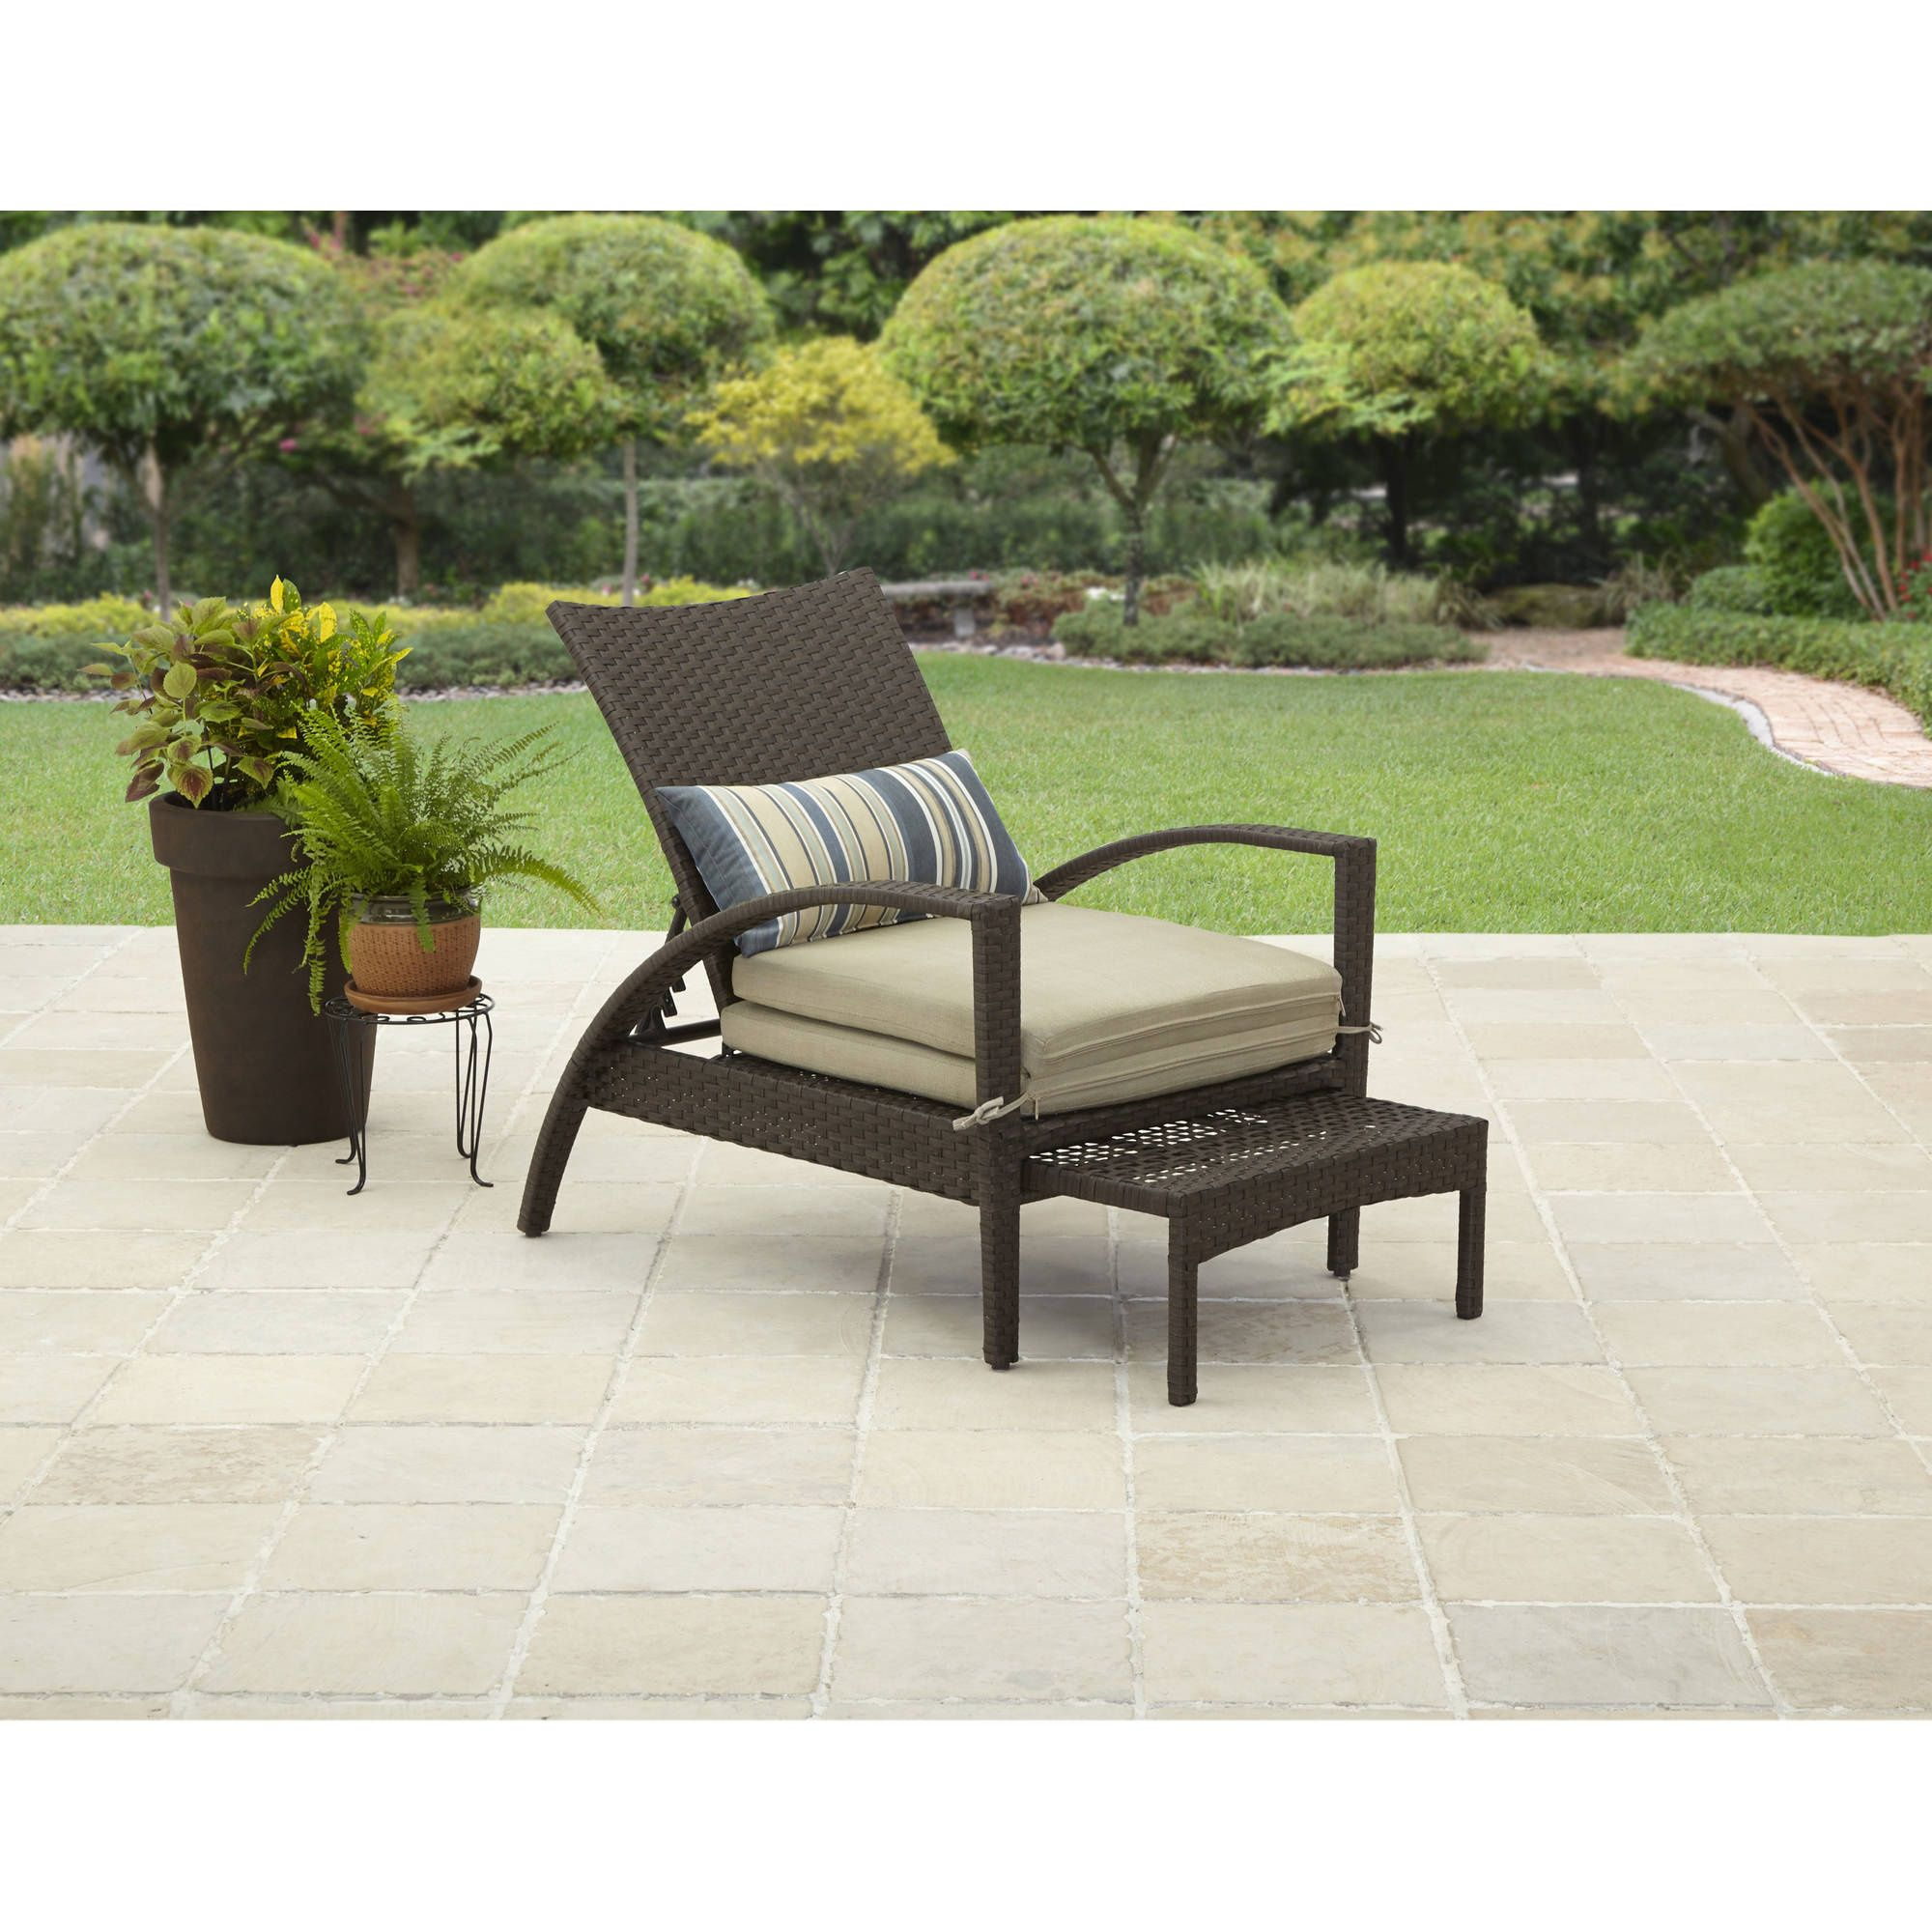 Buy Cheap Outdoor Furniture Best fice Furniture Check more at